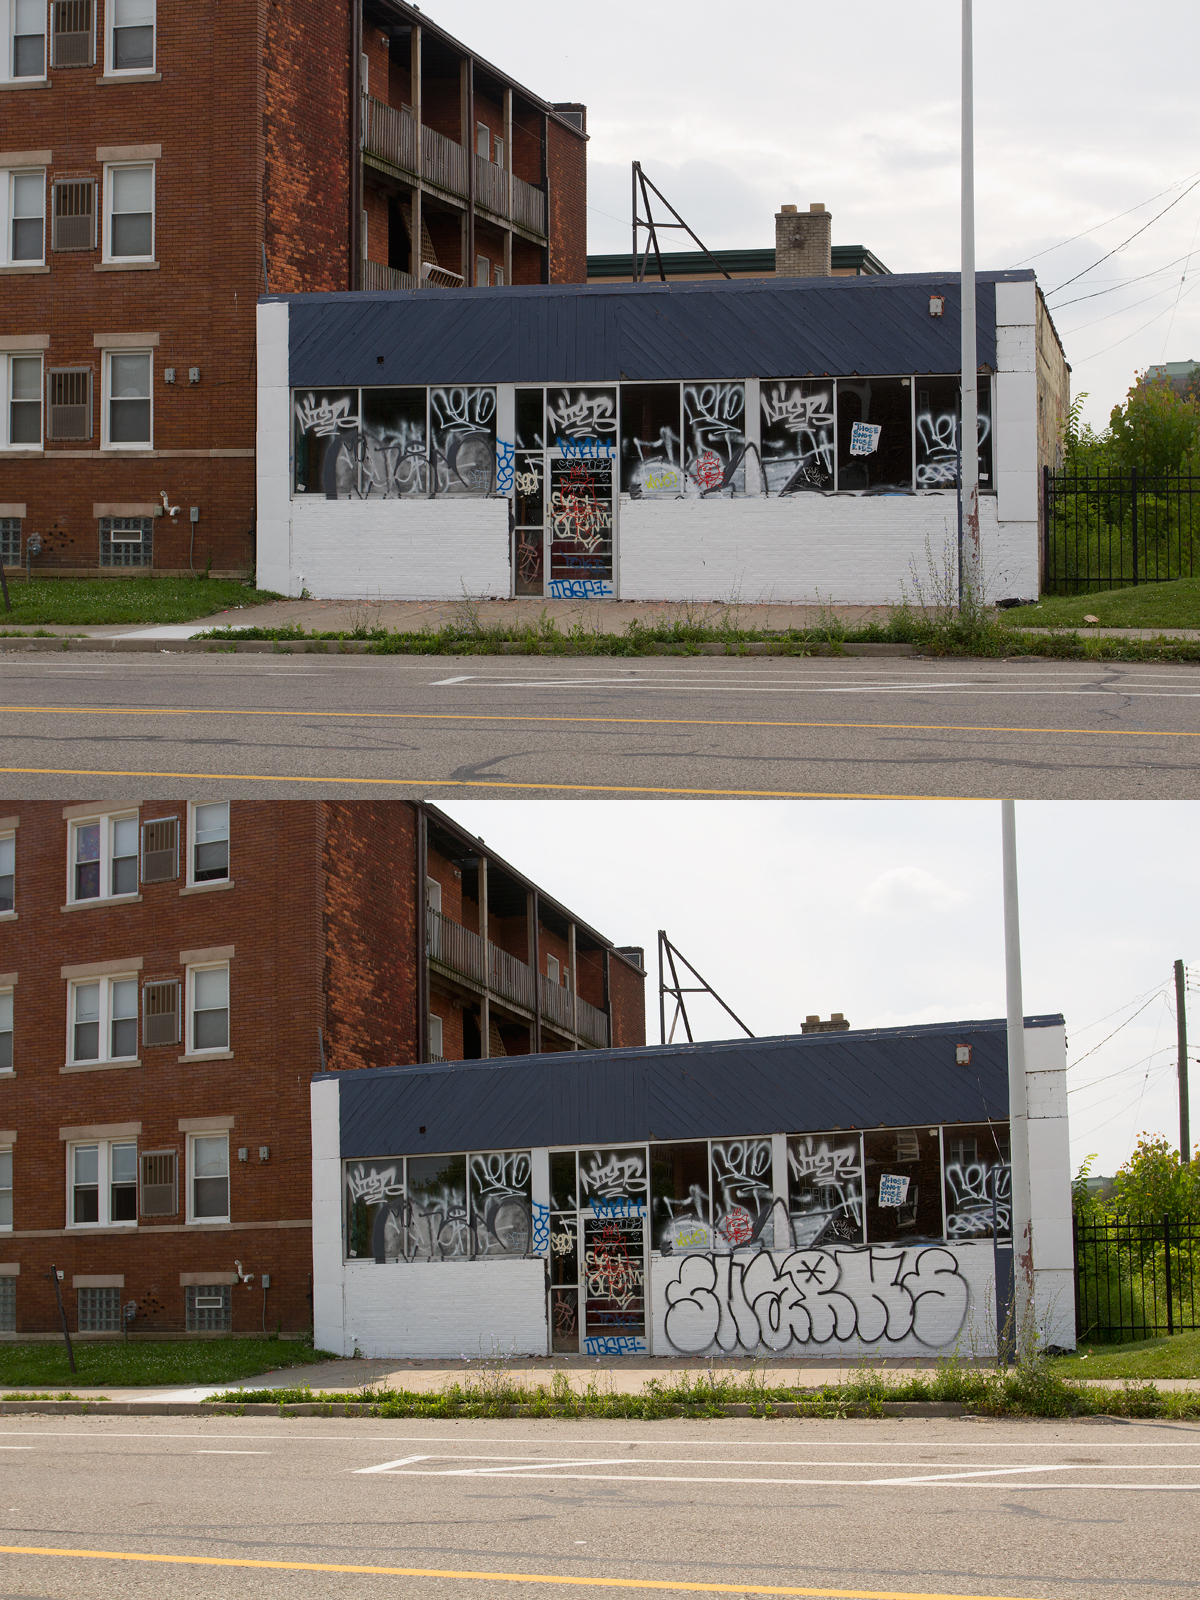 A day after a property owner painted over graffiti on this Cass Corridor building, vandals struck it again.